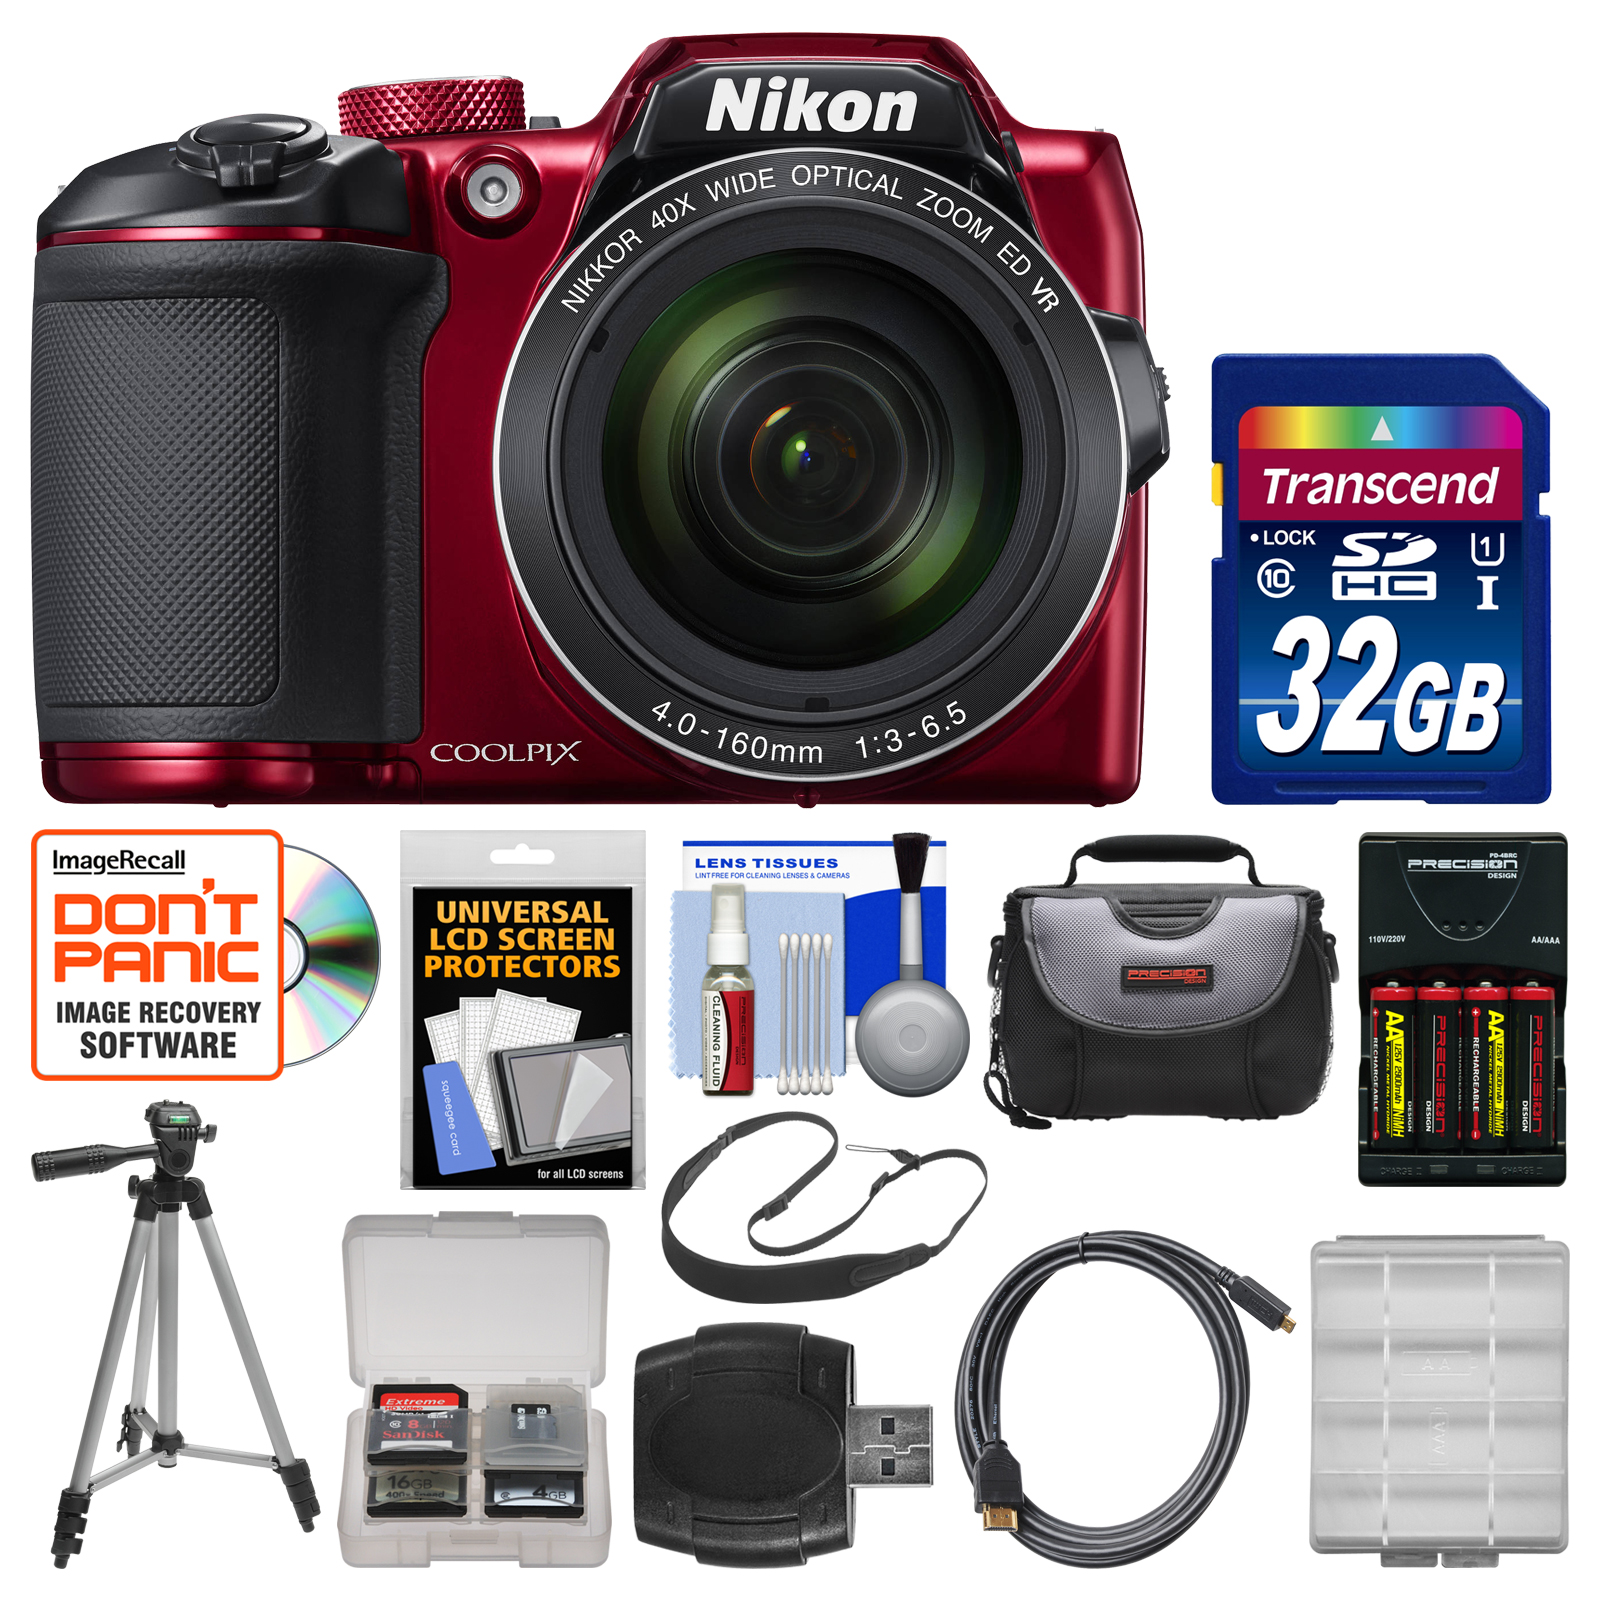 Nikon Coolpix B500 Wi-Fi Digital Camera (Red) with 32GB Card + Case + Batteries & Charger + Tripod + Sling Strap + Kit